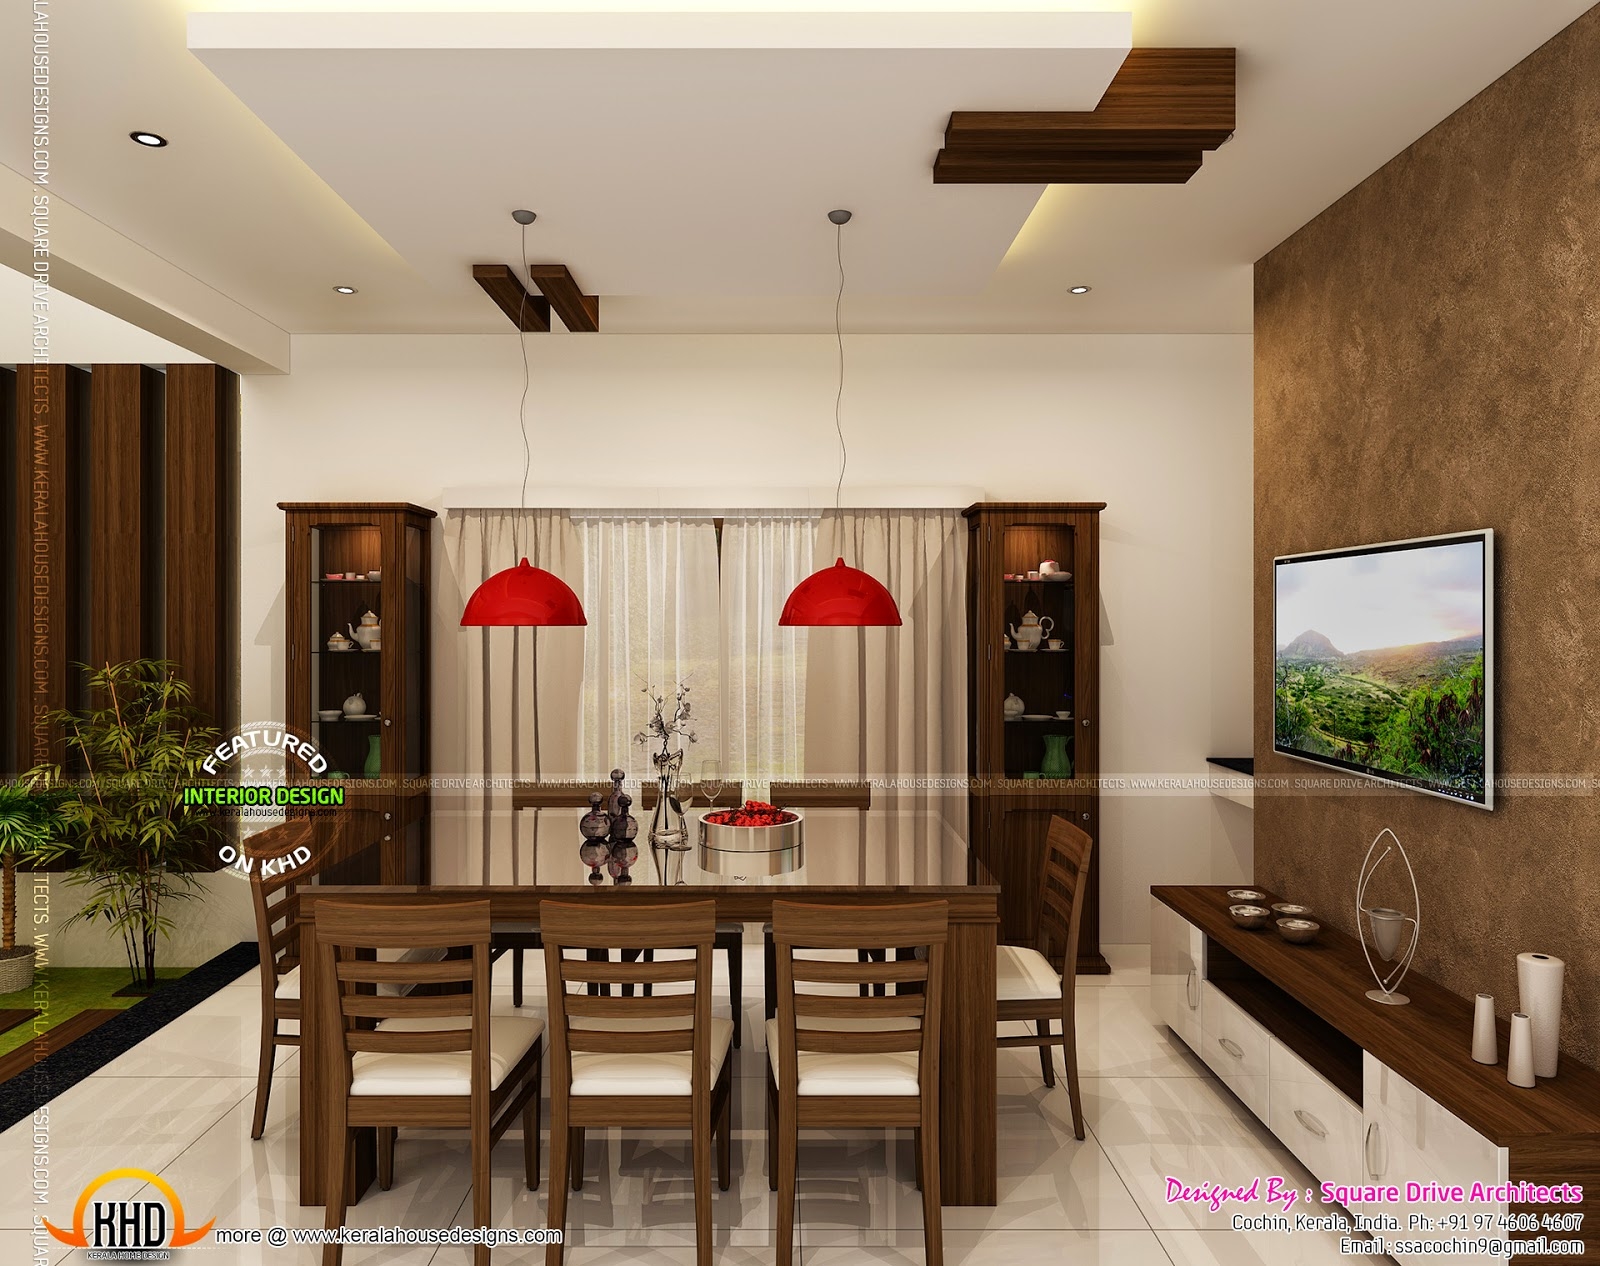 Home interiors designs kerala home design and floor plans Home design dining room ideas